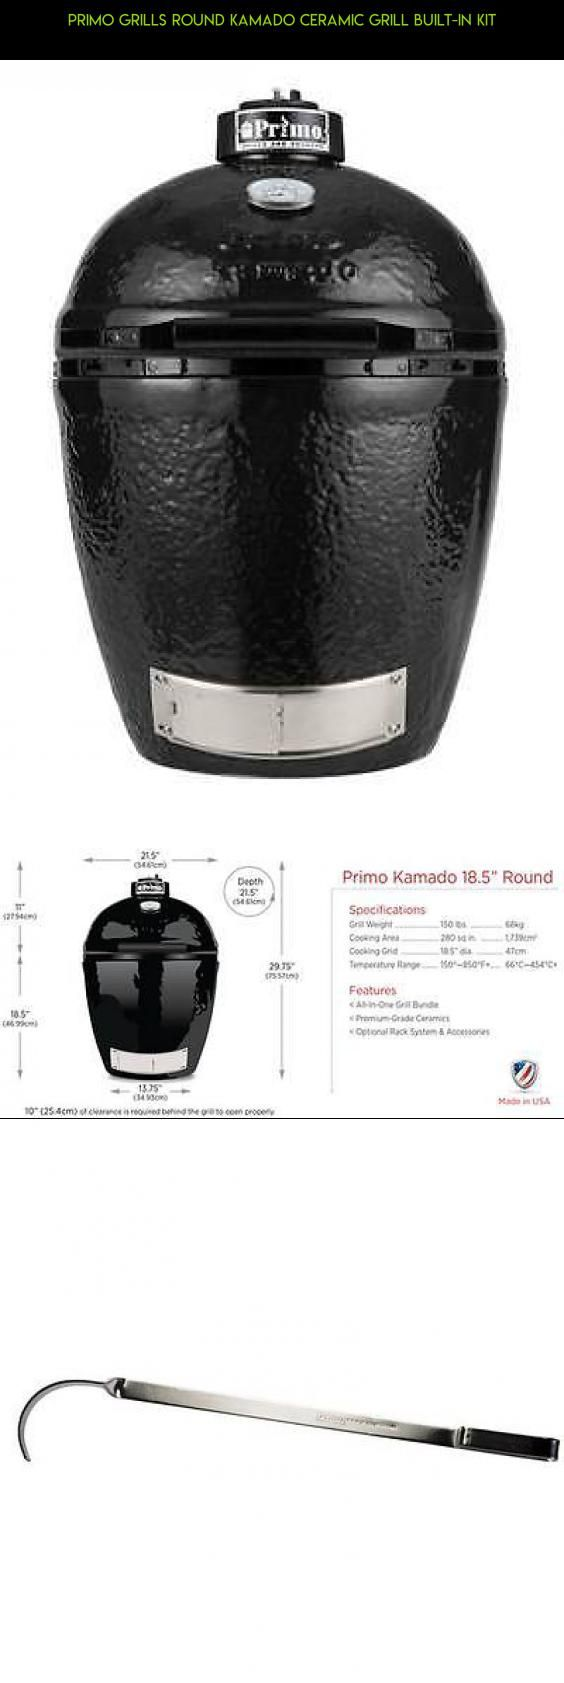 Primo Grills Round Kamado Ceramic Grill Built-In Kit #in #camera #grills #products #shopping #built #drone #parts #kit #fpv #plans #racing #gadgets #technology #tech